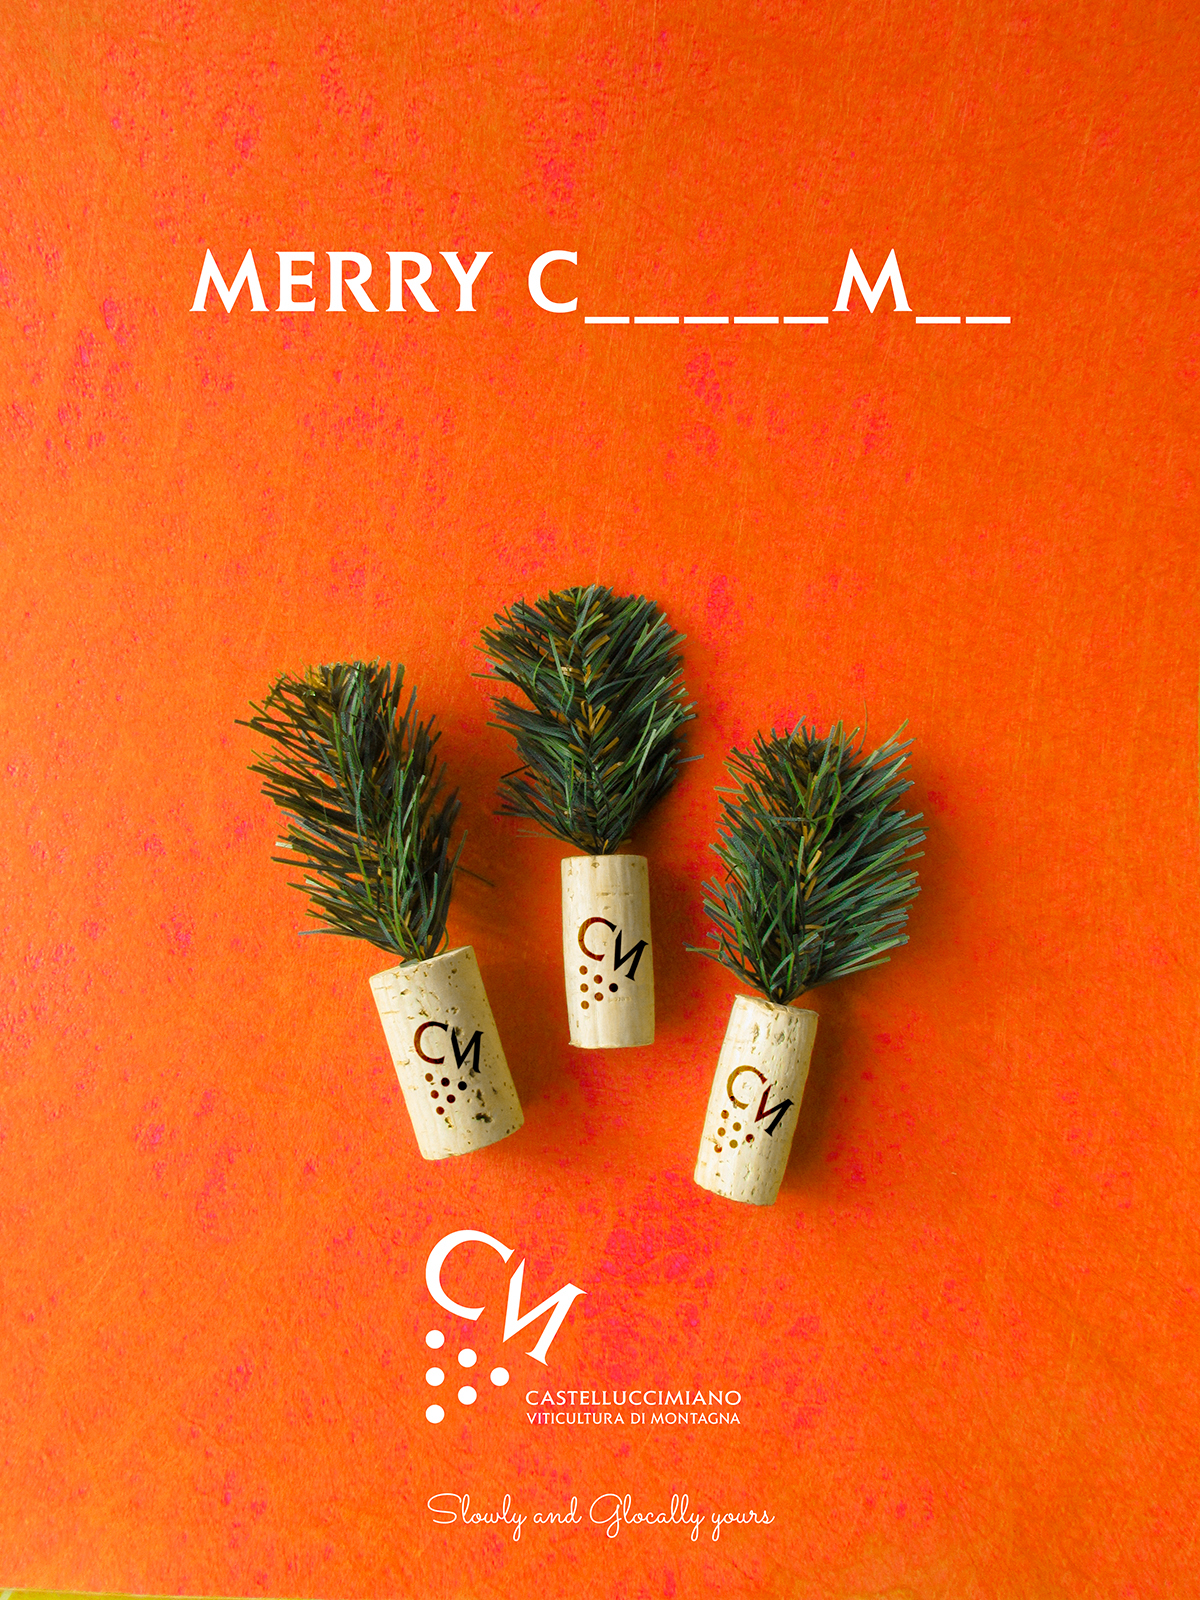 Castelluccimiano Merry Christmas Greetings On Behance